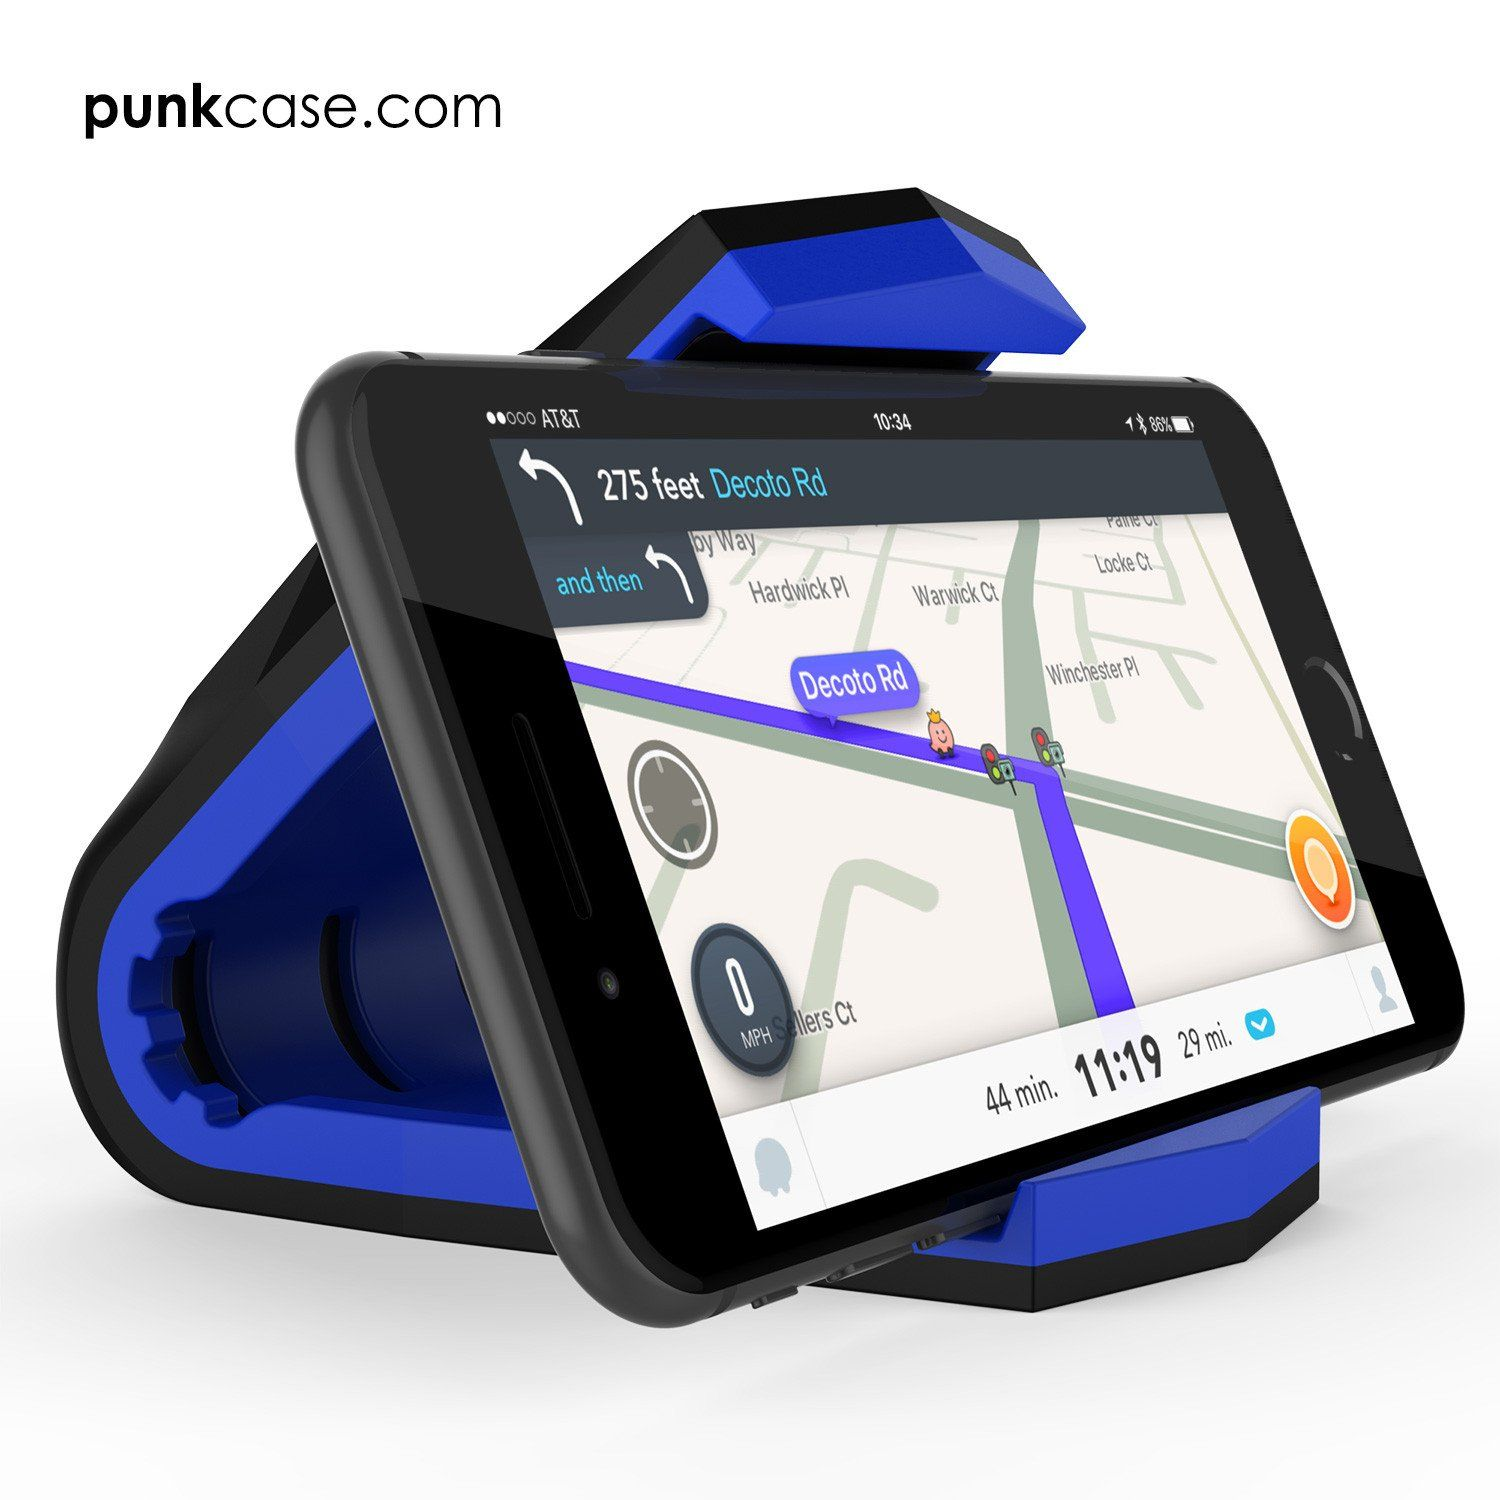 Punkcase viper car phone holder blue universal dashboard mount for all smartphones low profile